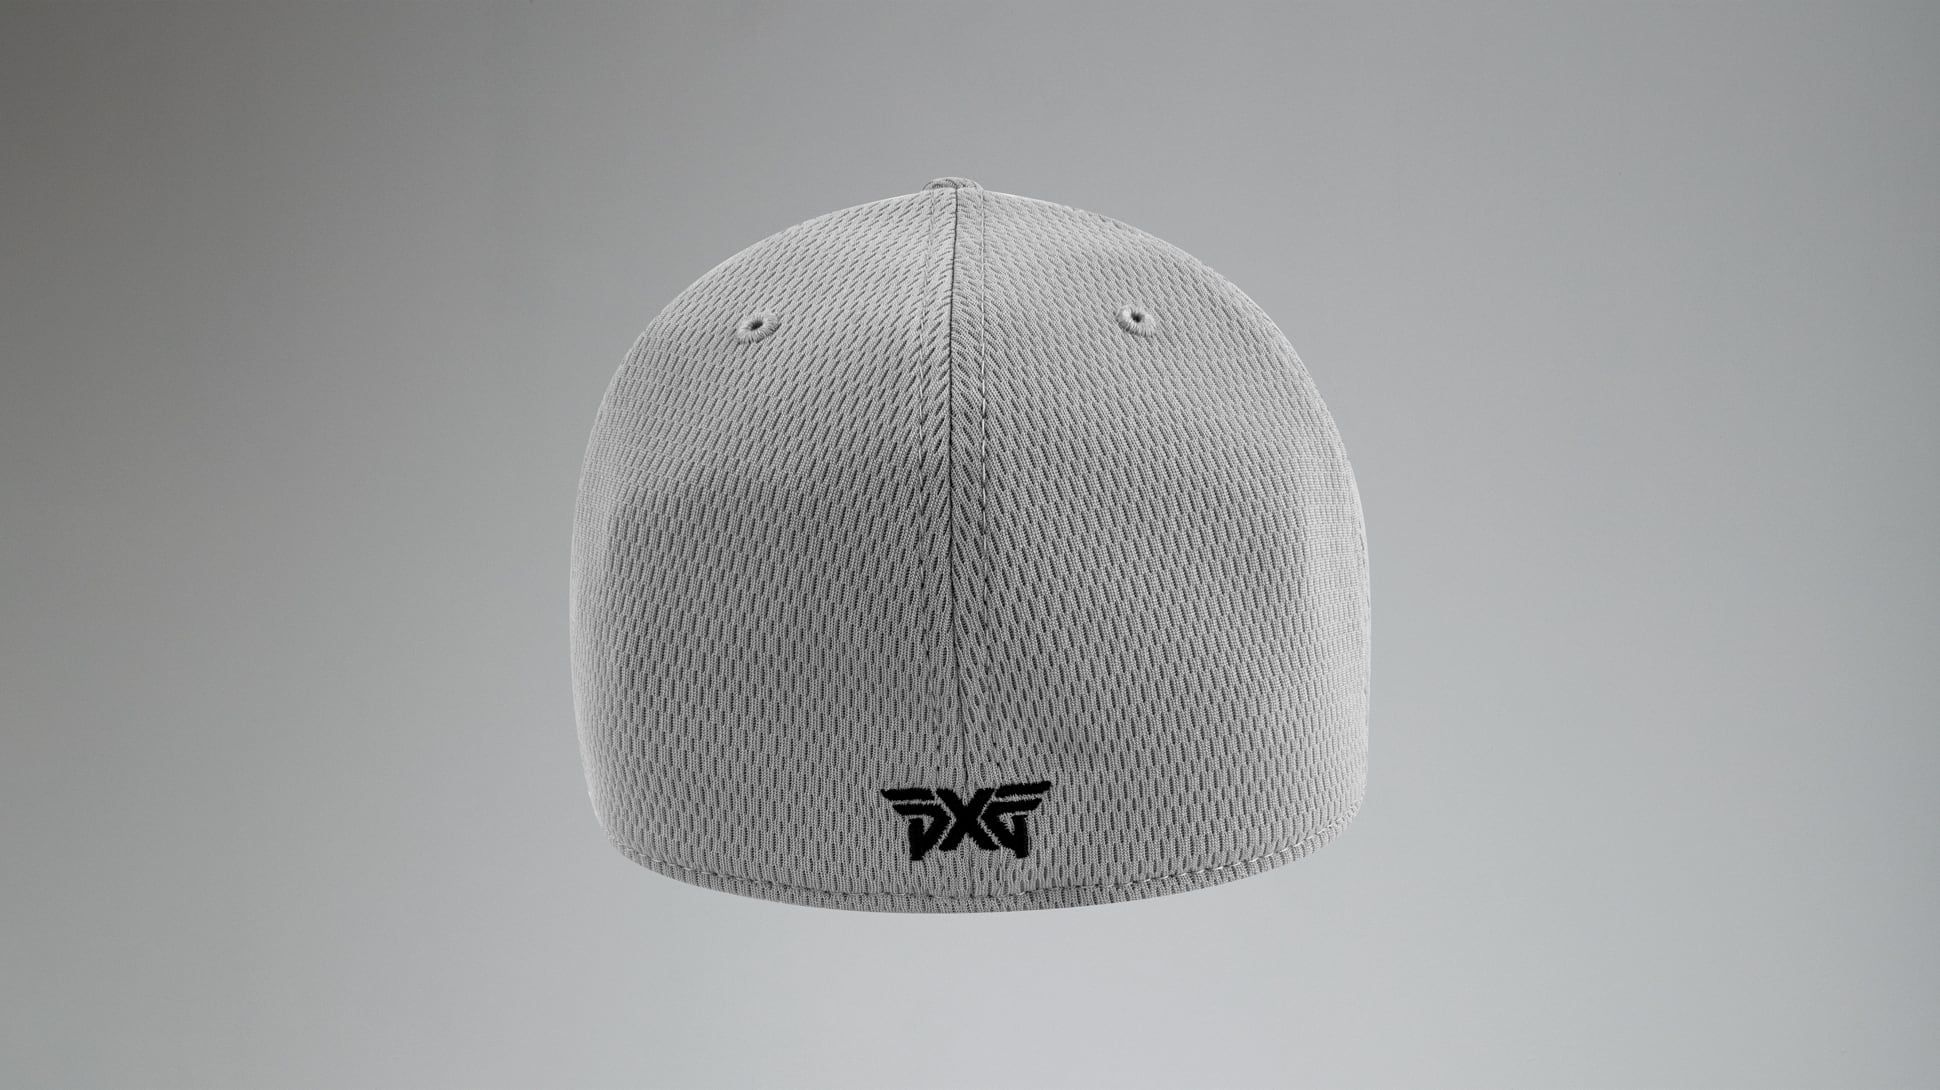 Performance Line 39THIRTY Stretch Fit Cap Image 6